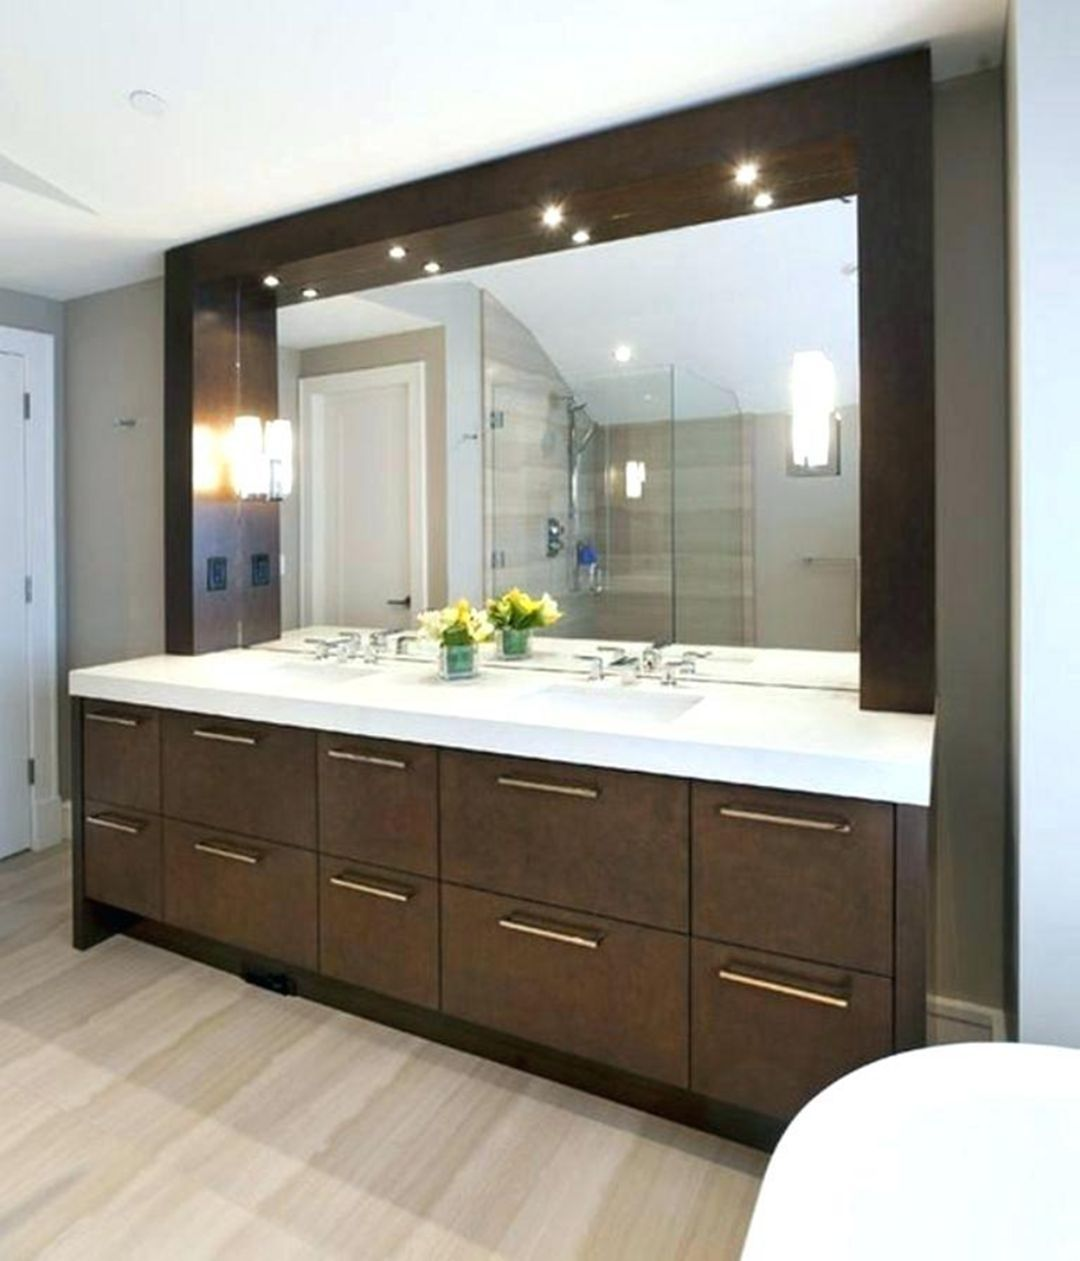 13 Amazing Modern Vanity Mirror Design Ideas For You To See With